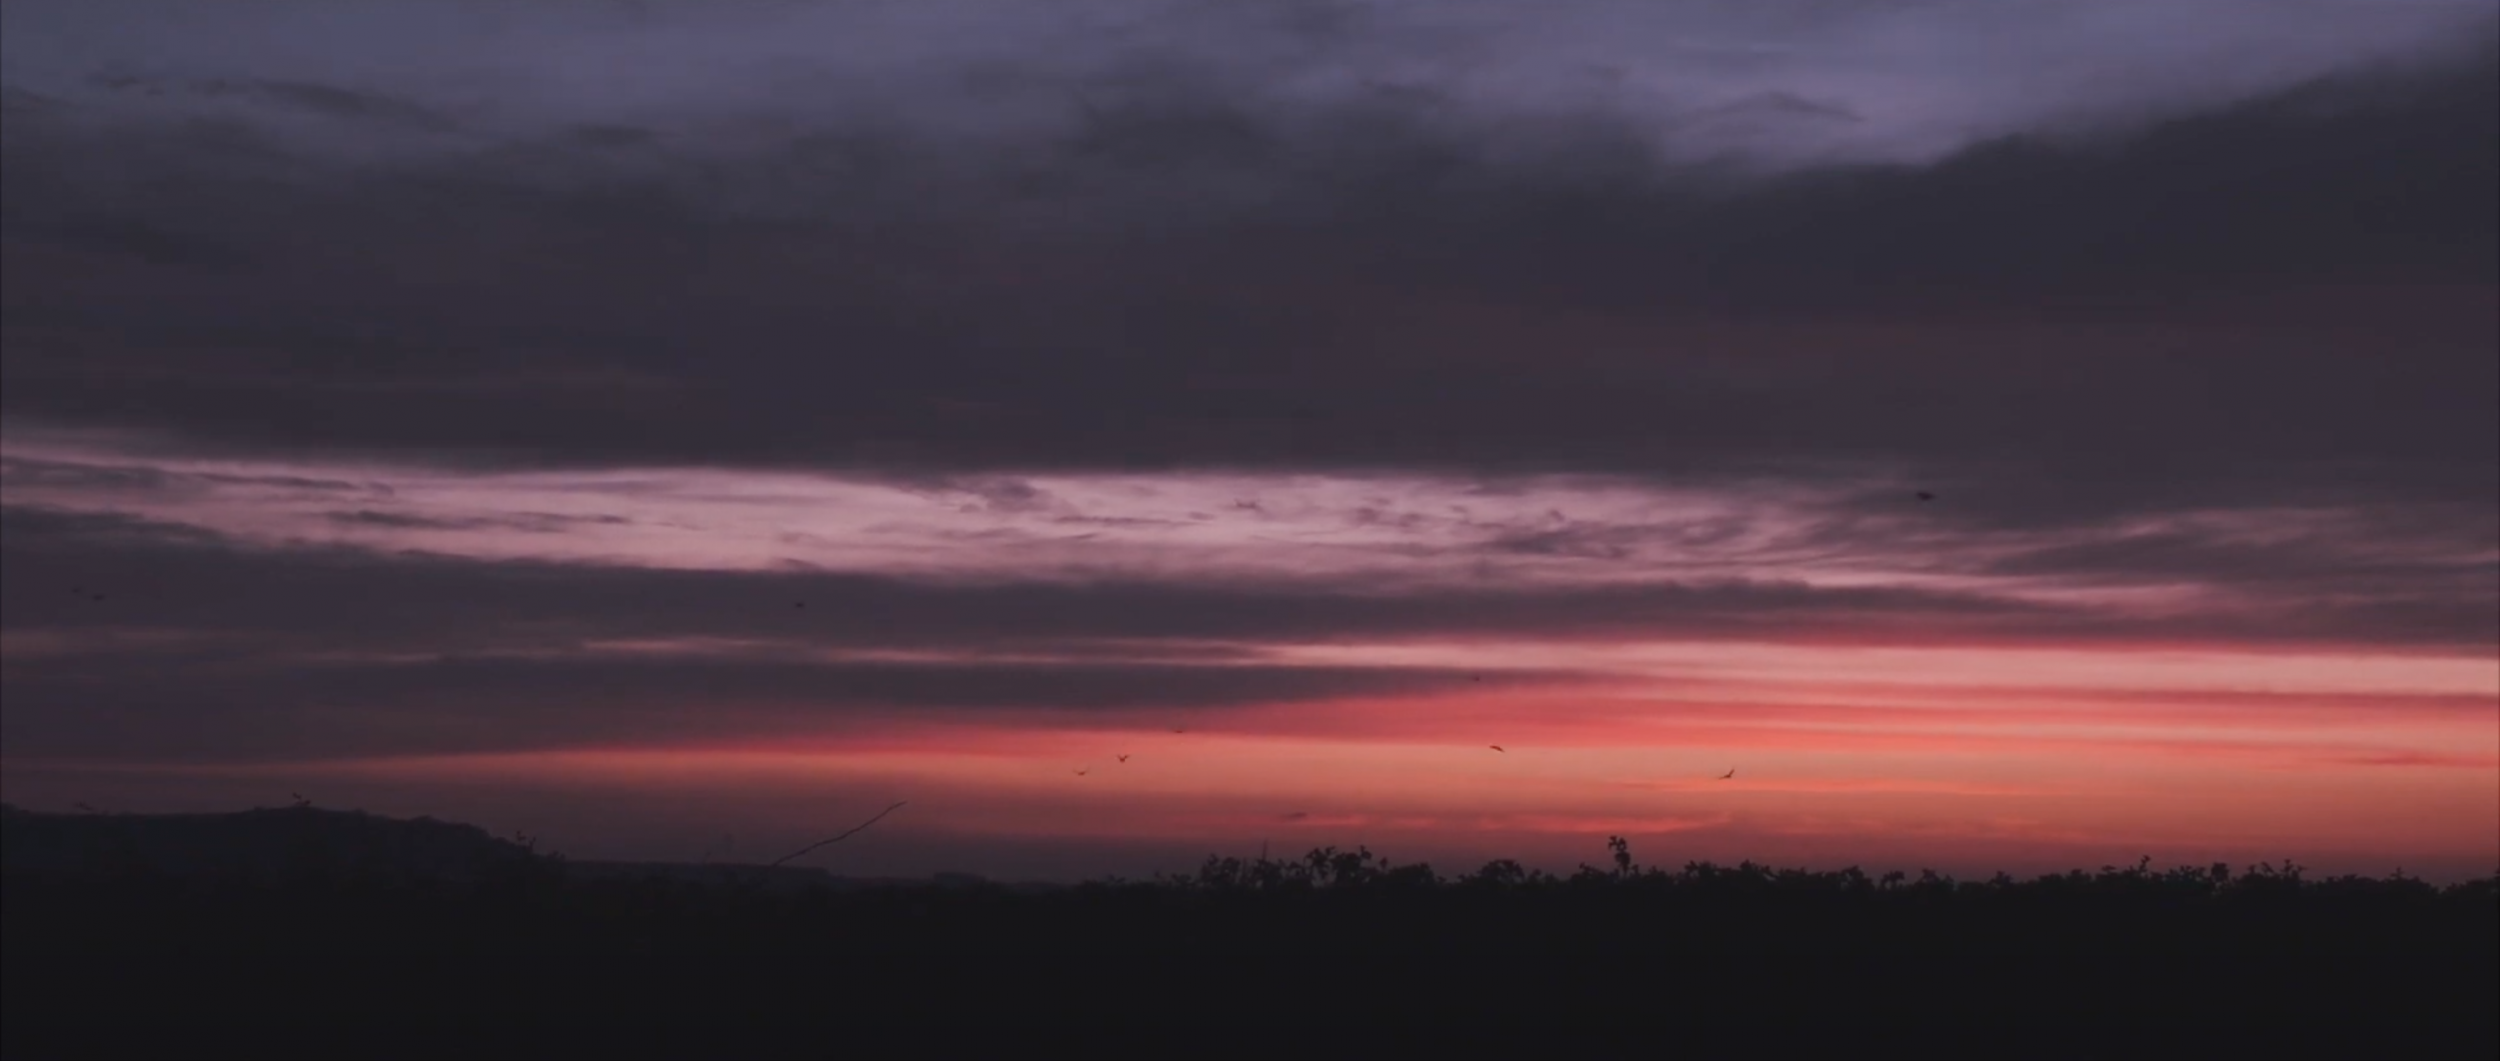 Surrender ~ A Coronavirus Short Film by Ben Holbrook Shot in South Wales, UK